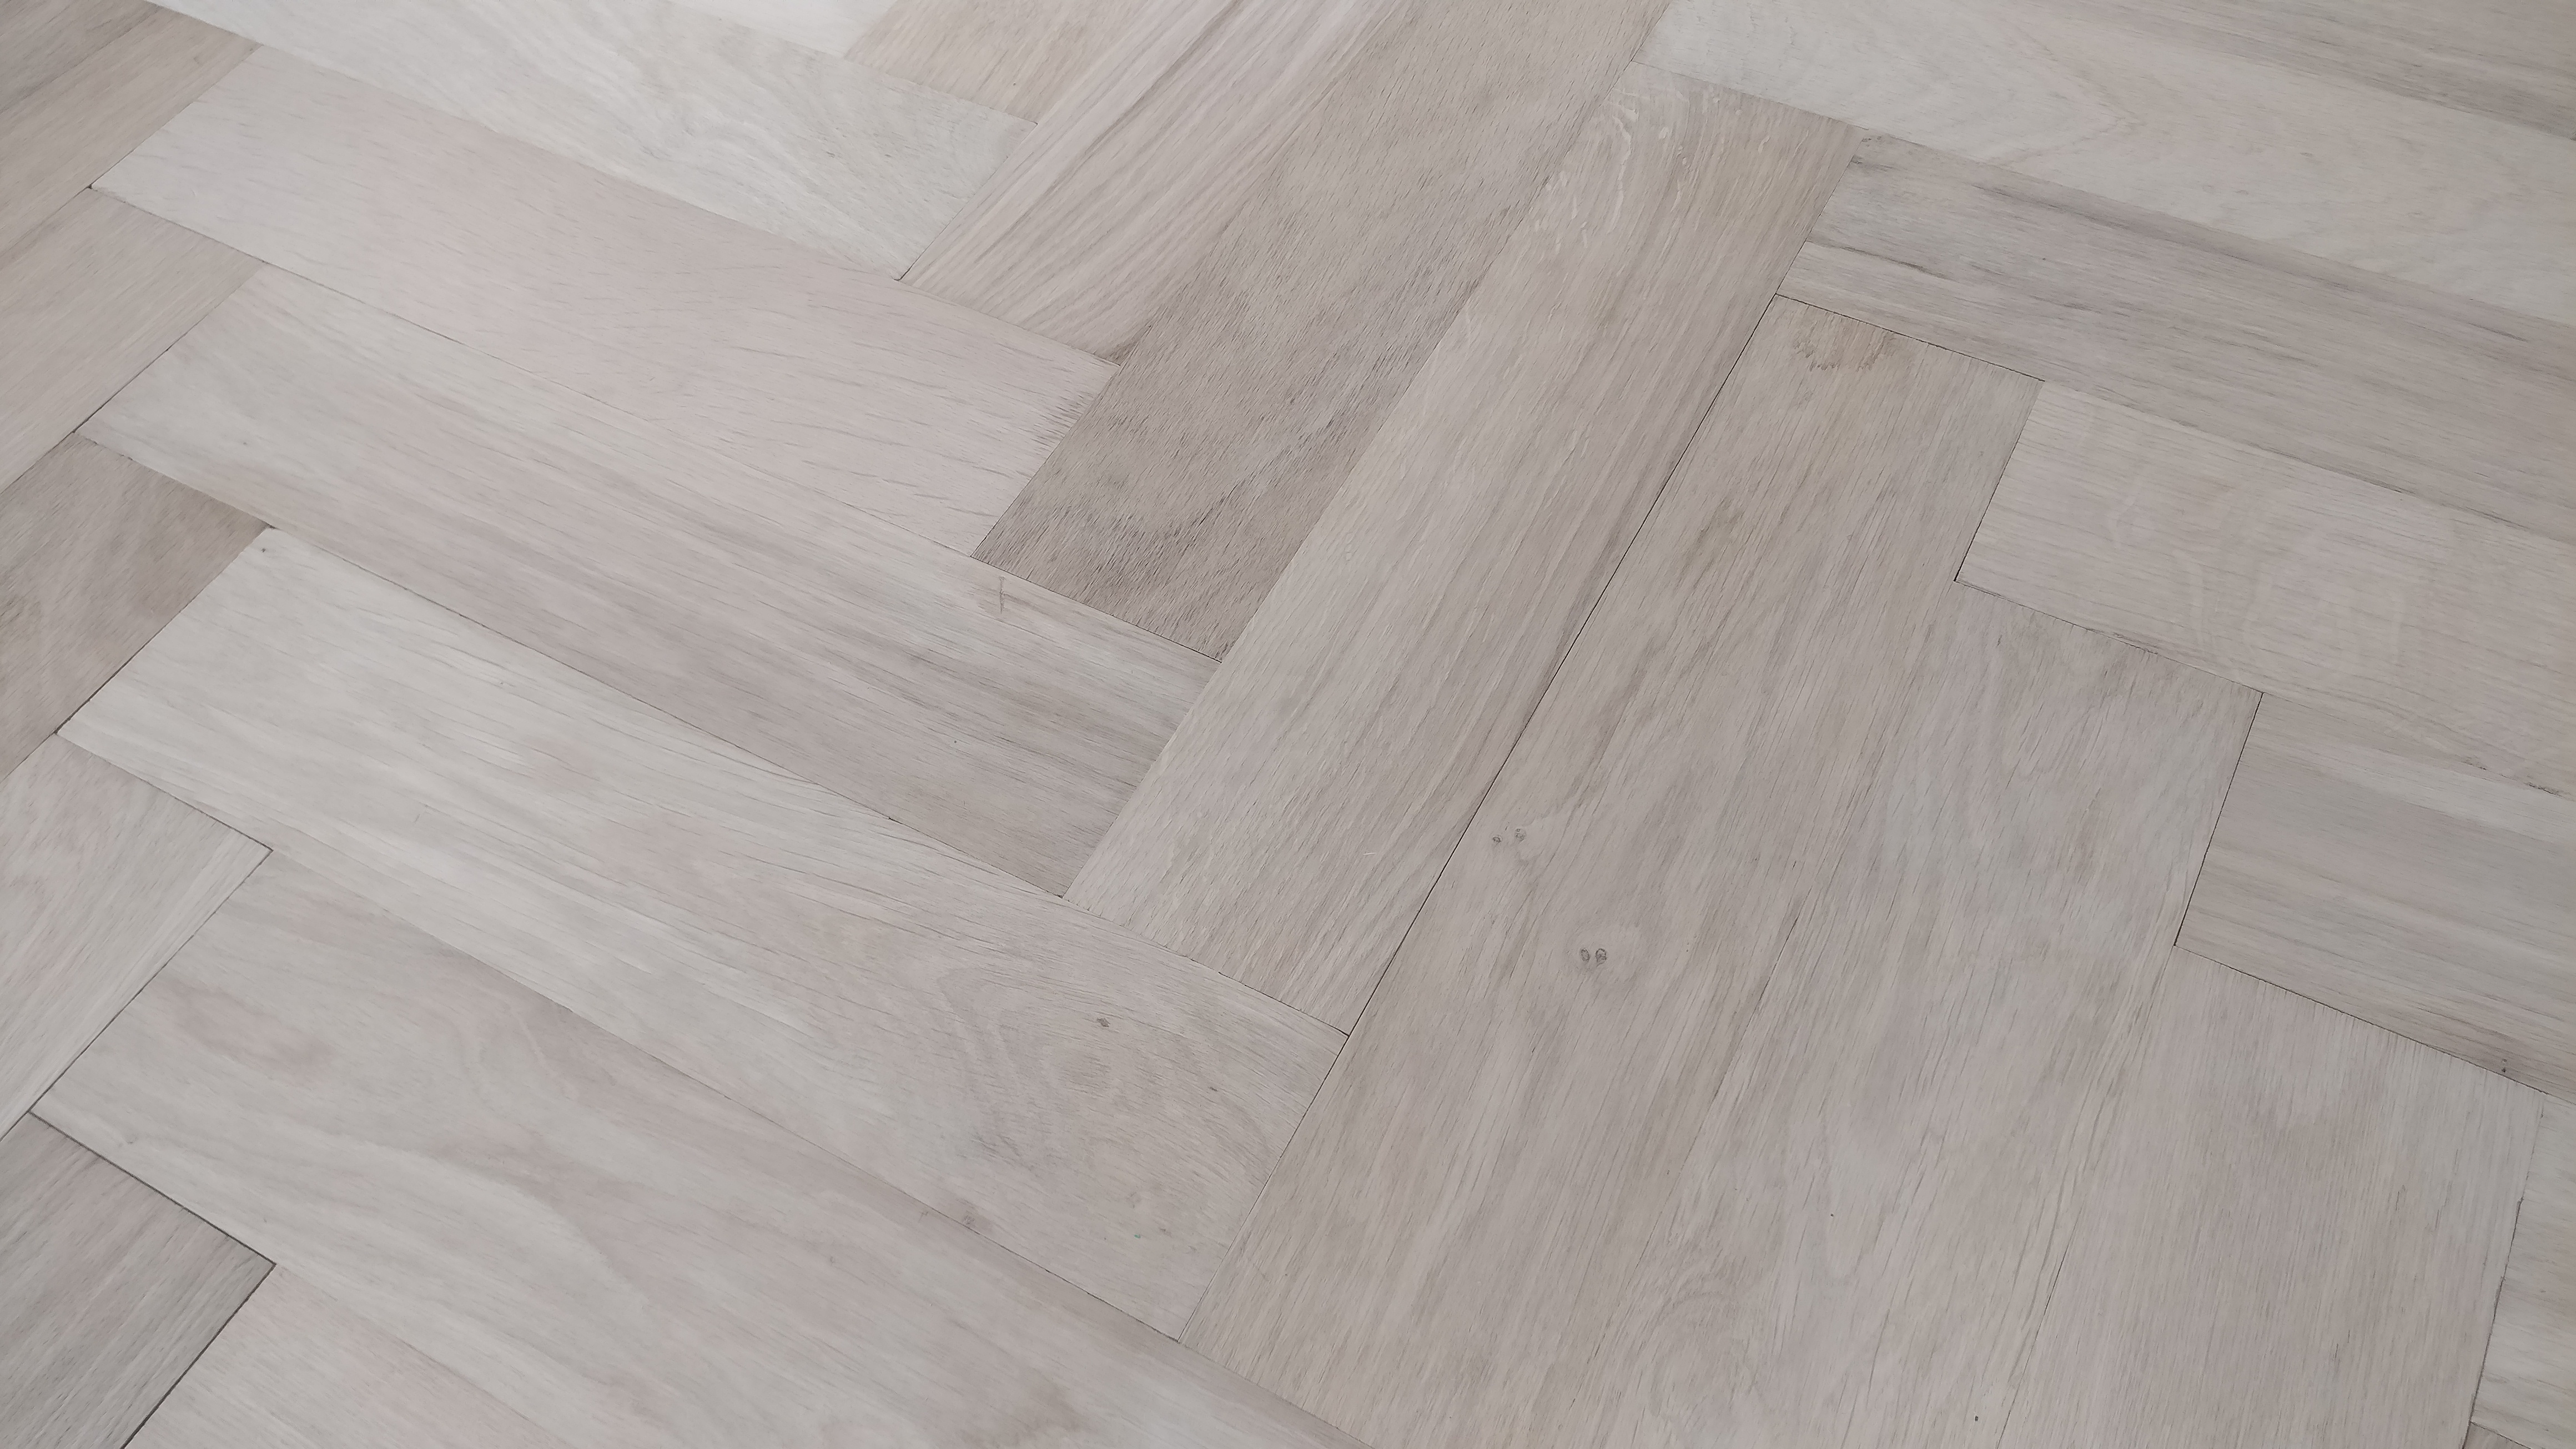 Oak Herringbone Blocks Parquet Wood Flooring European Oak